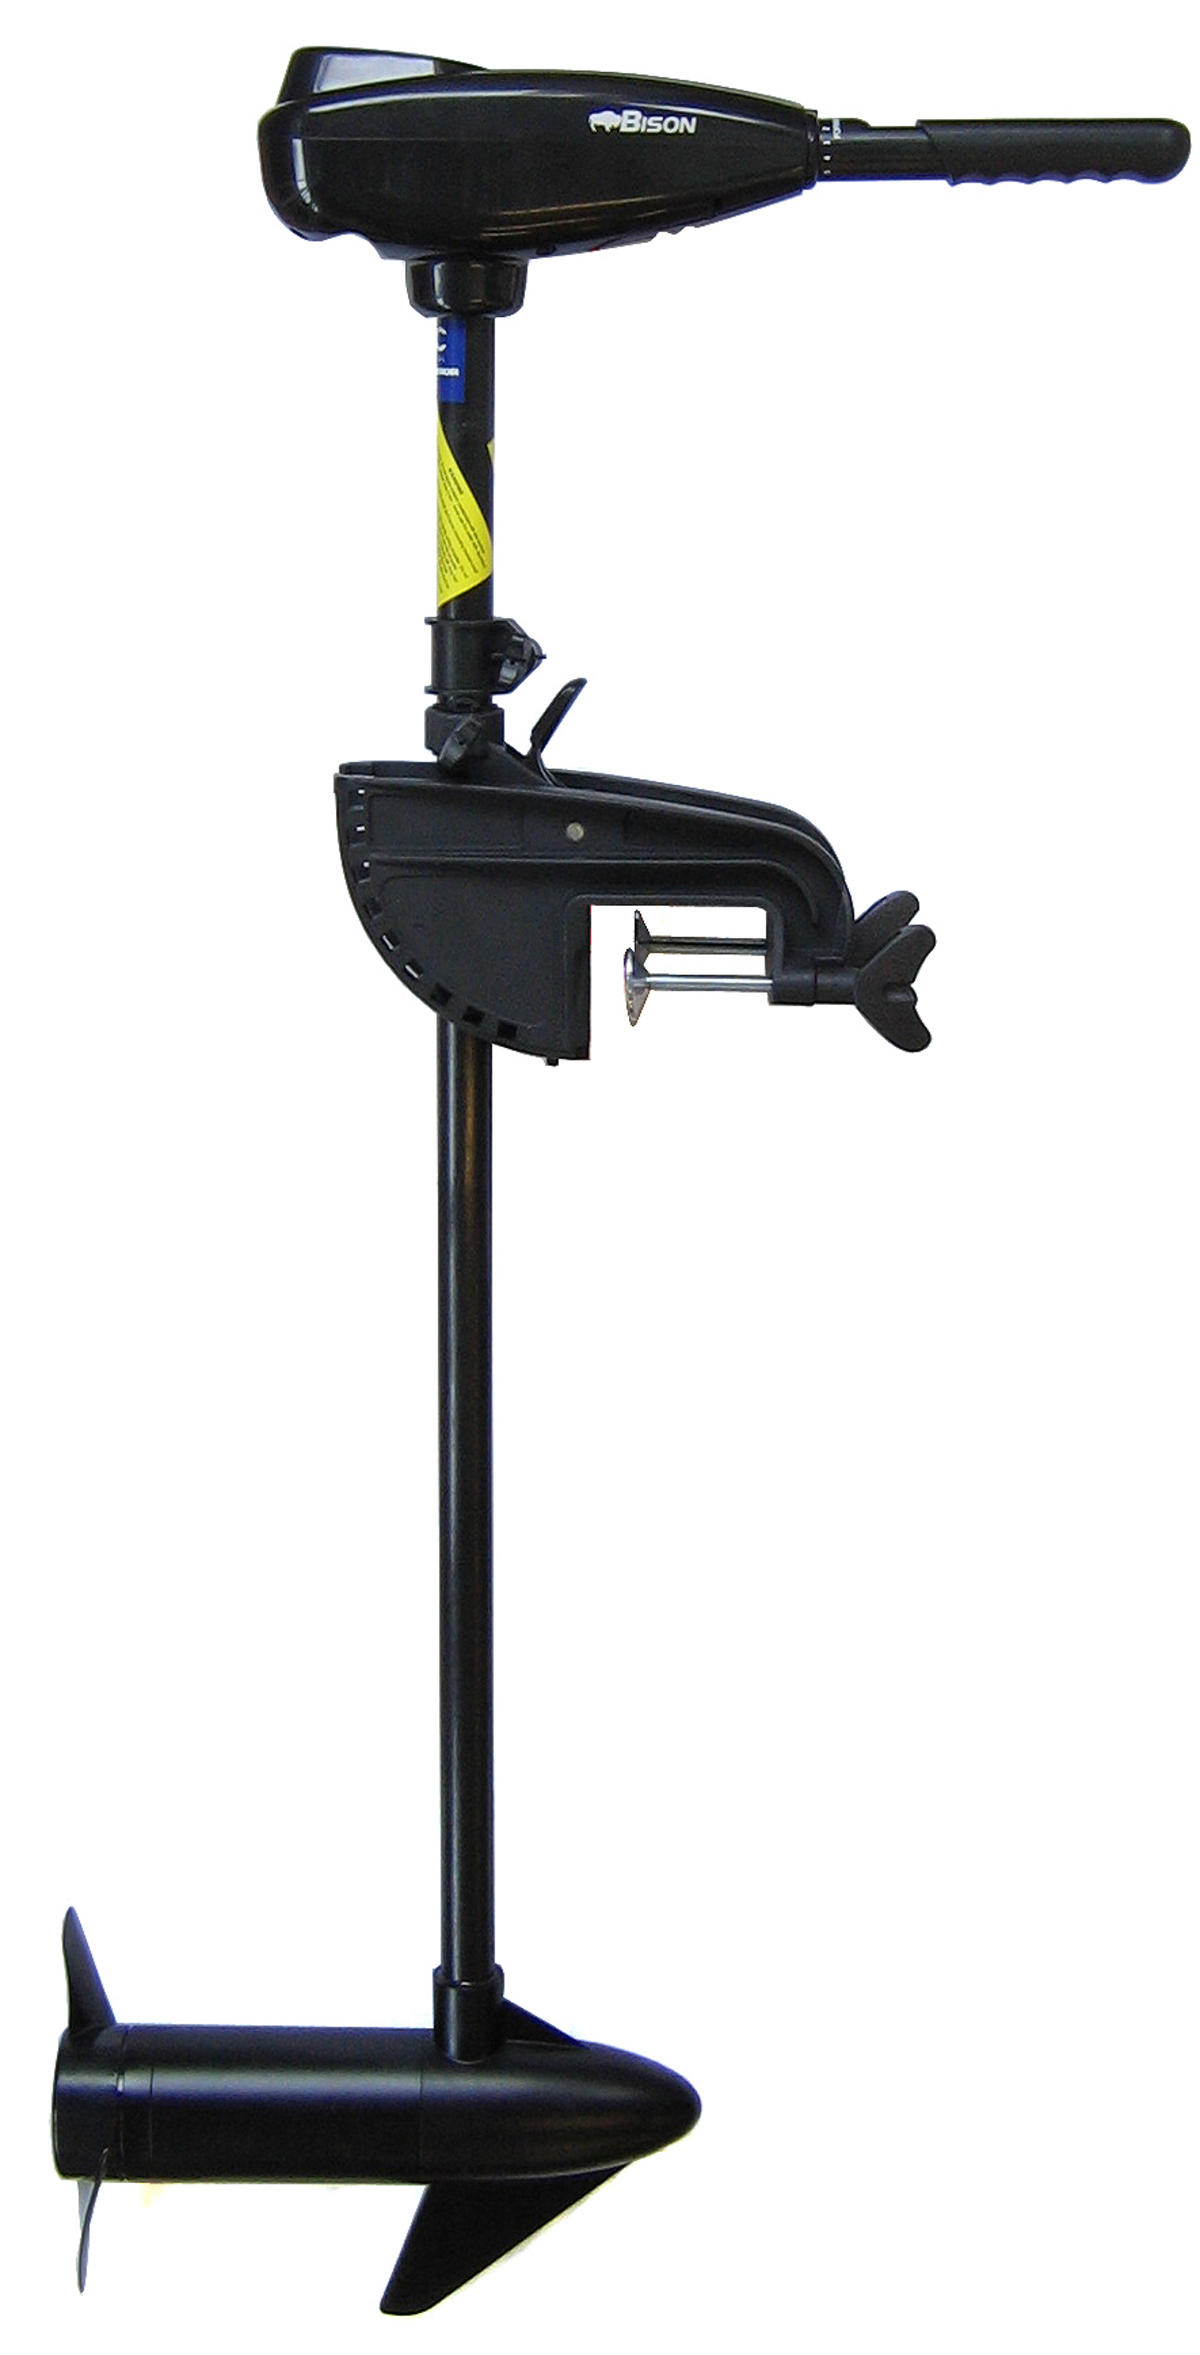 Bison 55ft Lb Electric Outboard Motor